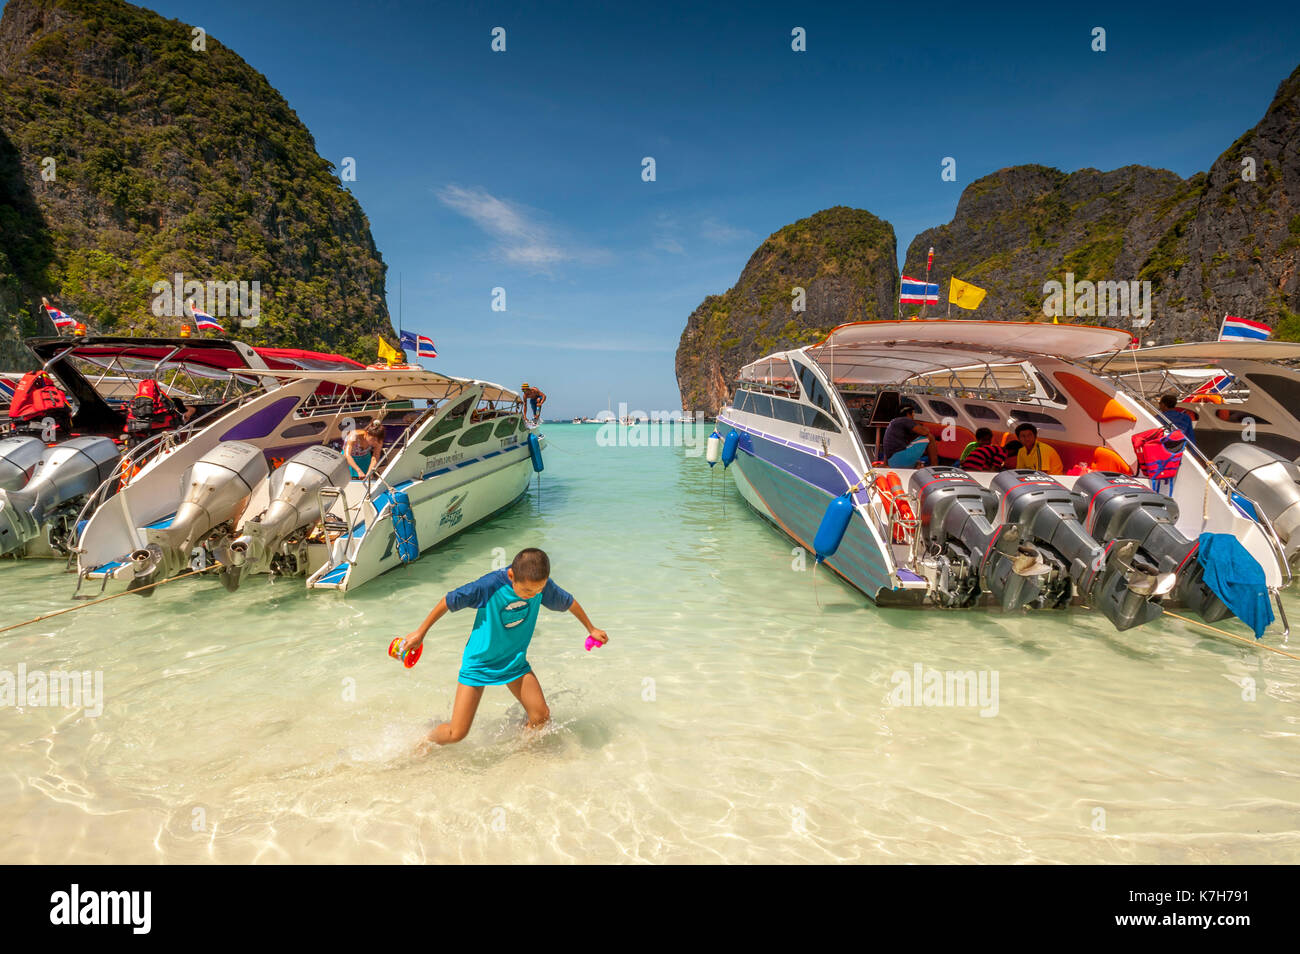 Boy plays between tourist boats lined up at Maya Bay, Ko Phi Phi Lee Island, Thailand. - Stock Image